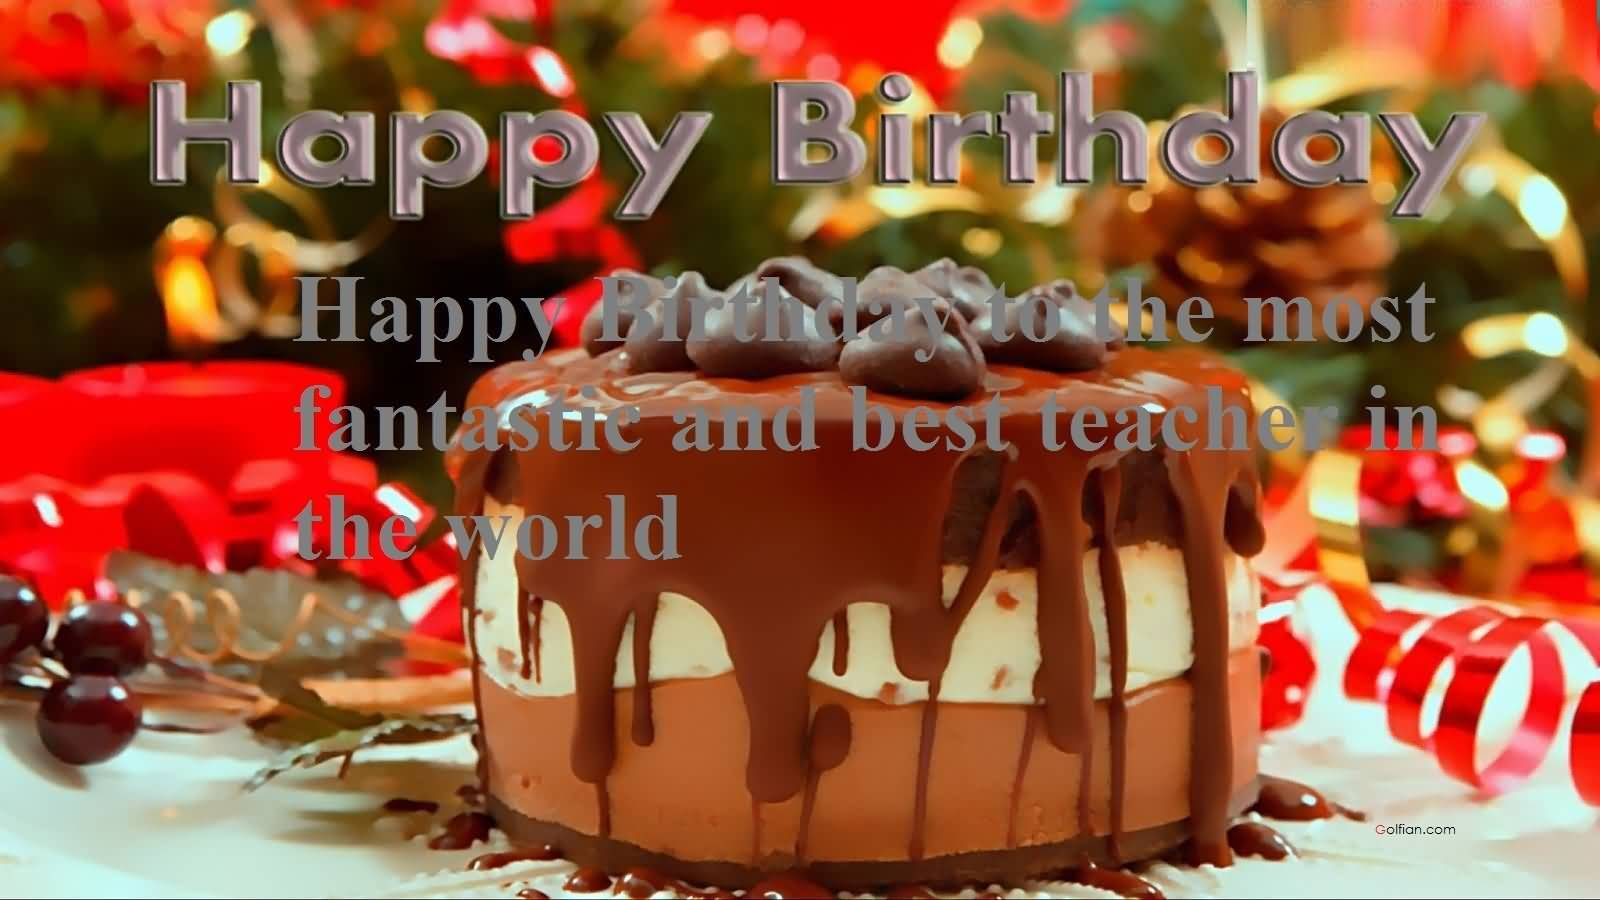 happy birthday wishes for friend wallpaper ; Awesome-Happy-Birthday-Wishes-For-Friend-Wallpaper-Cakes